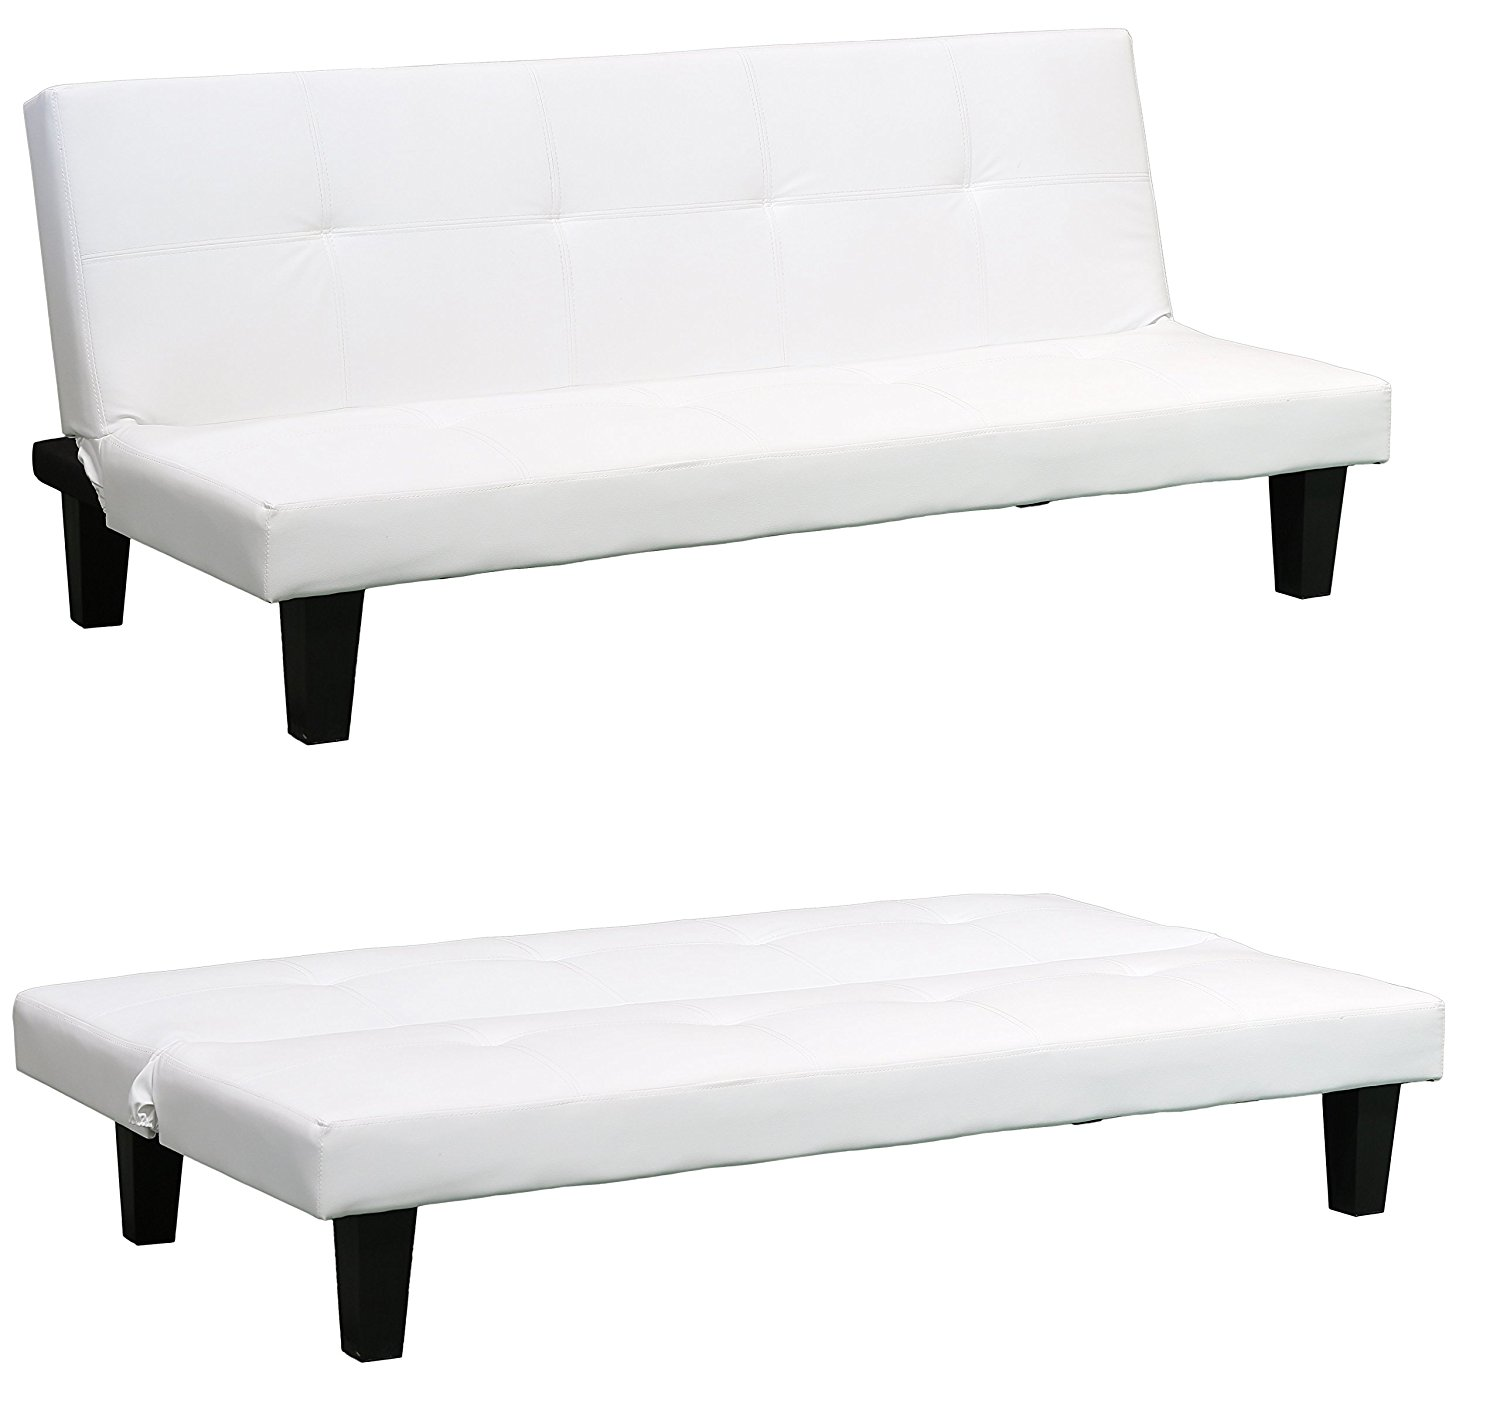 Sienna Contemporary Faux White Leather Sofa Bed Click Clack System